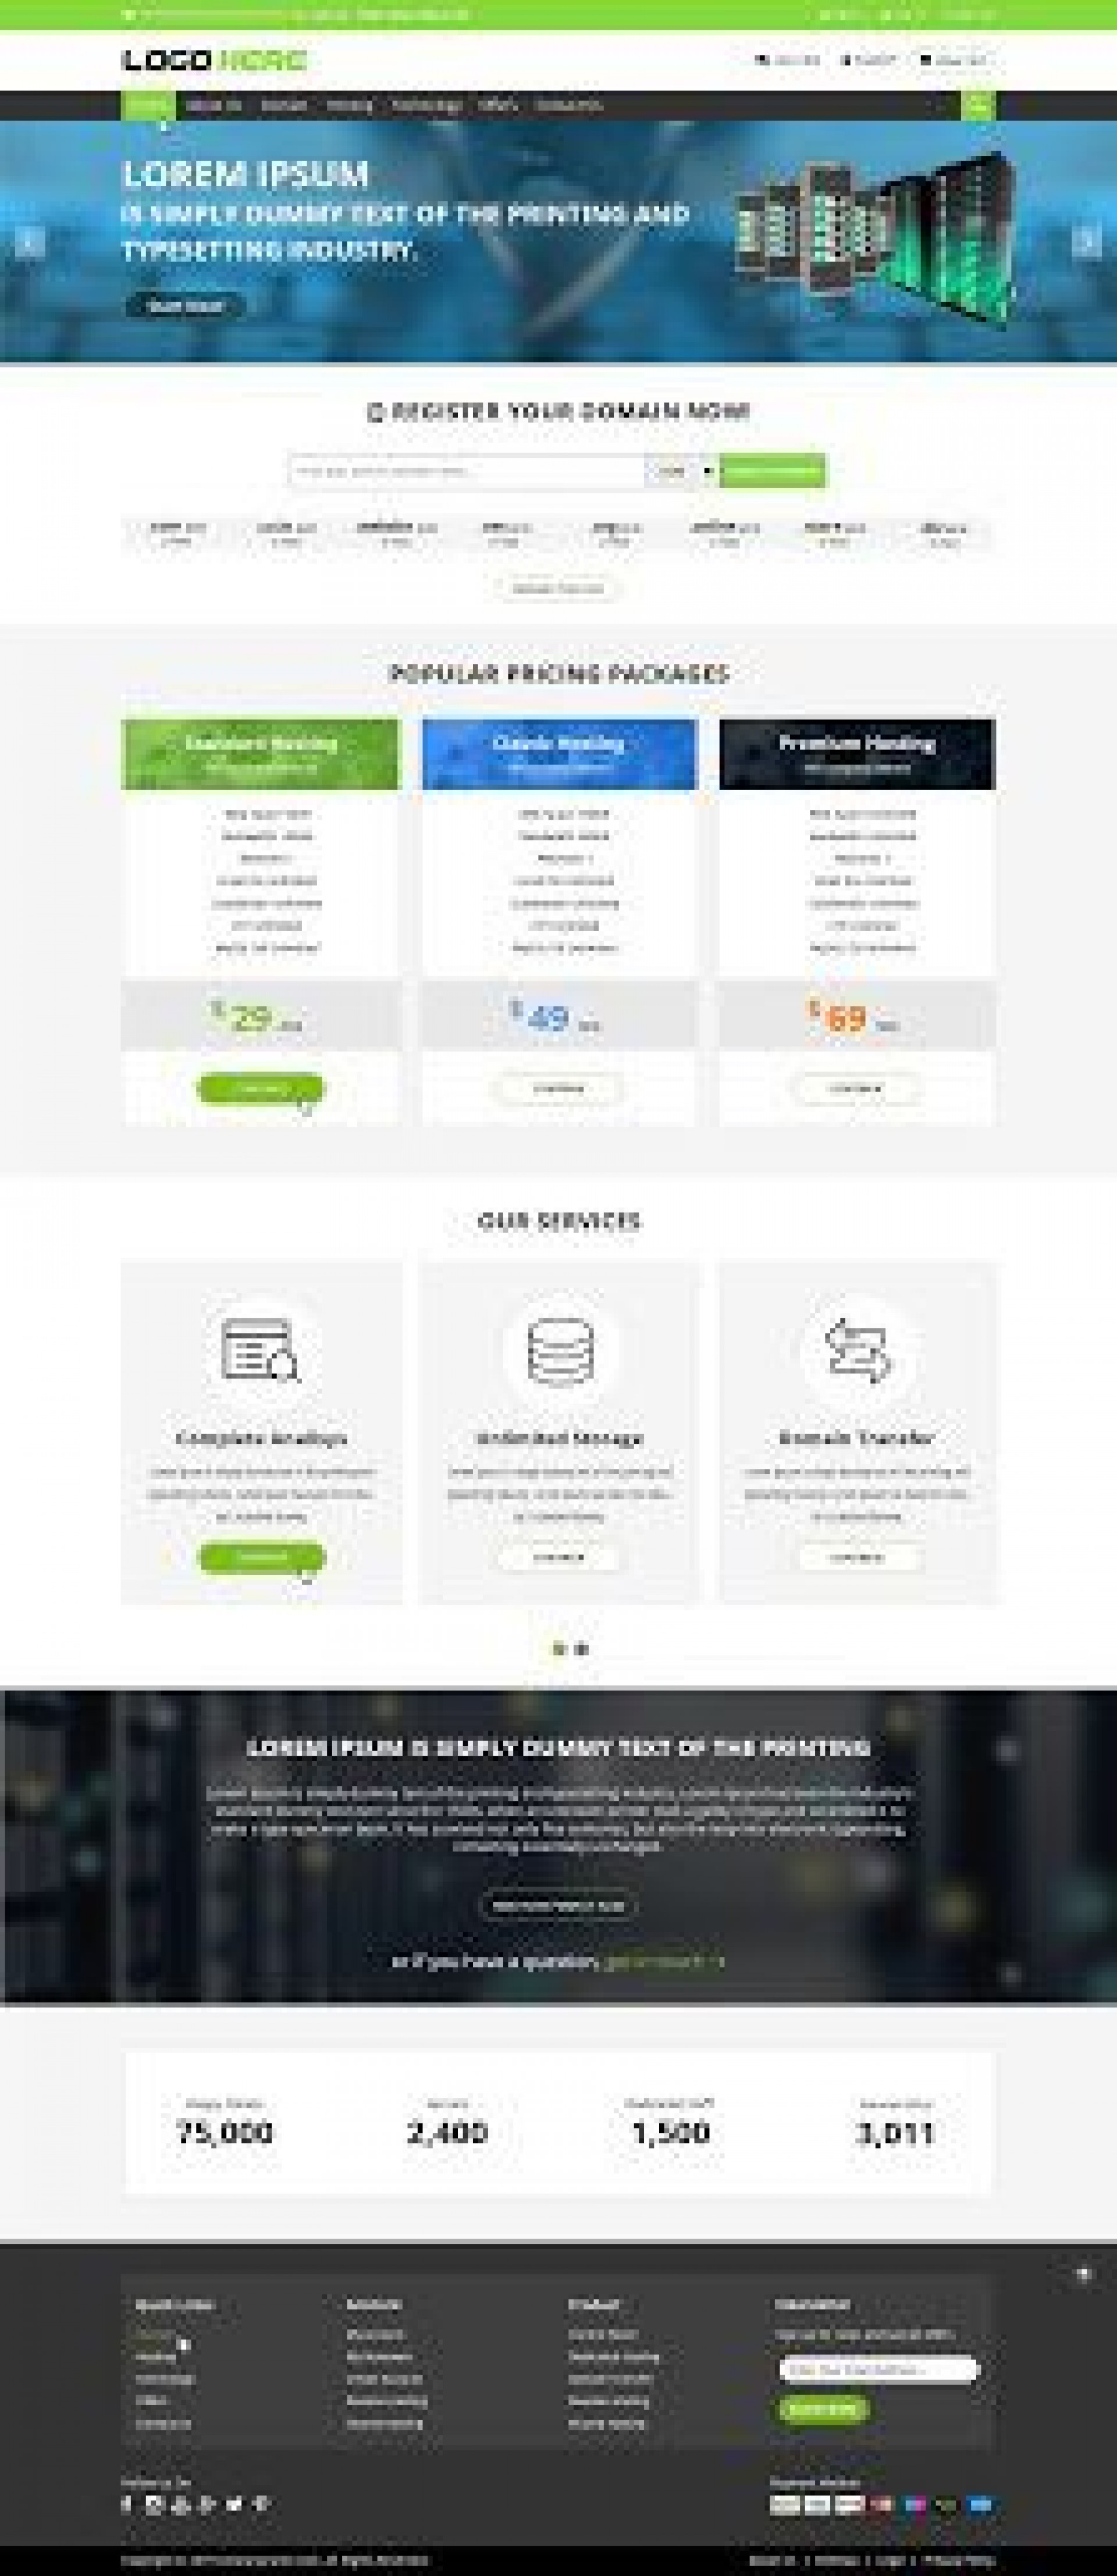 000 Archaicawful Web Page Template Html Free Download Highest Clarity  One Website Cs Single1920